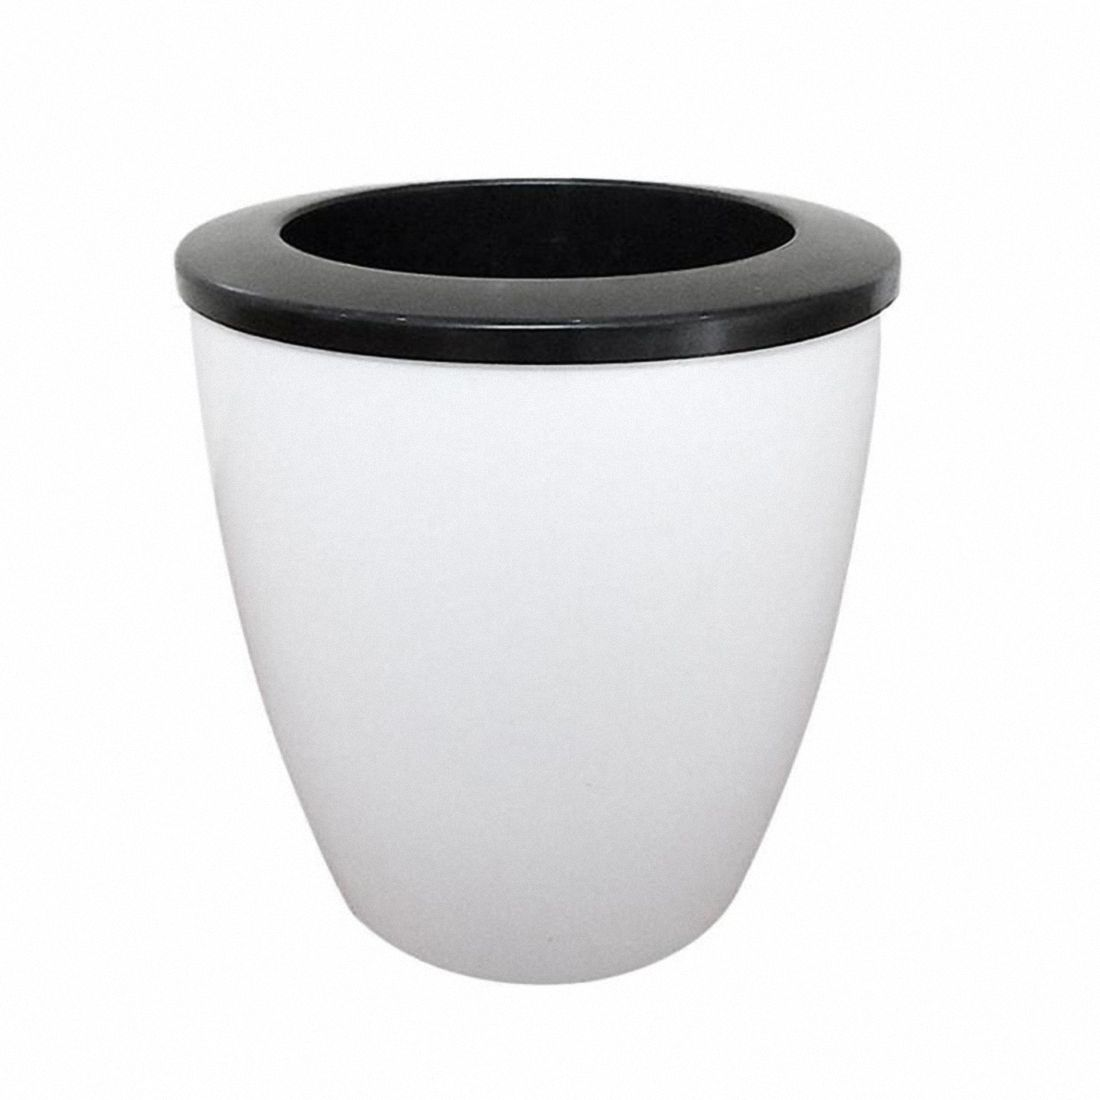 White Flower Pots For Sale Hot Sale 3 Pack Self Watering Planter White Flower Pot M